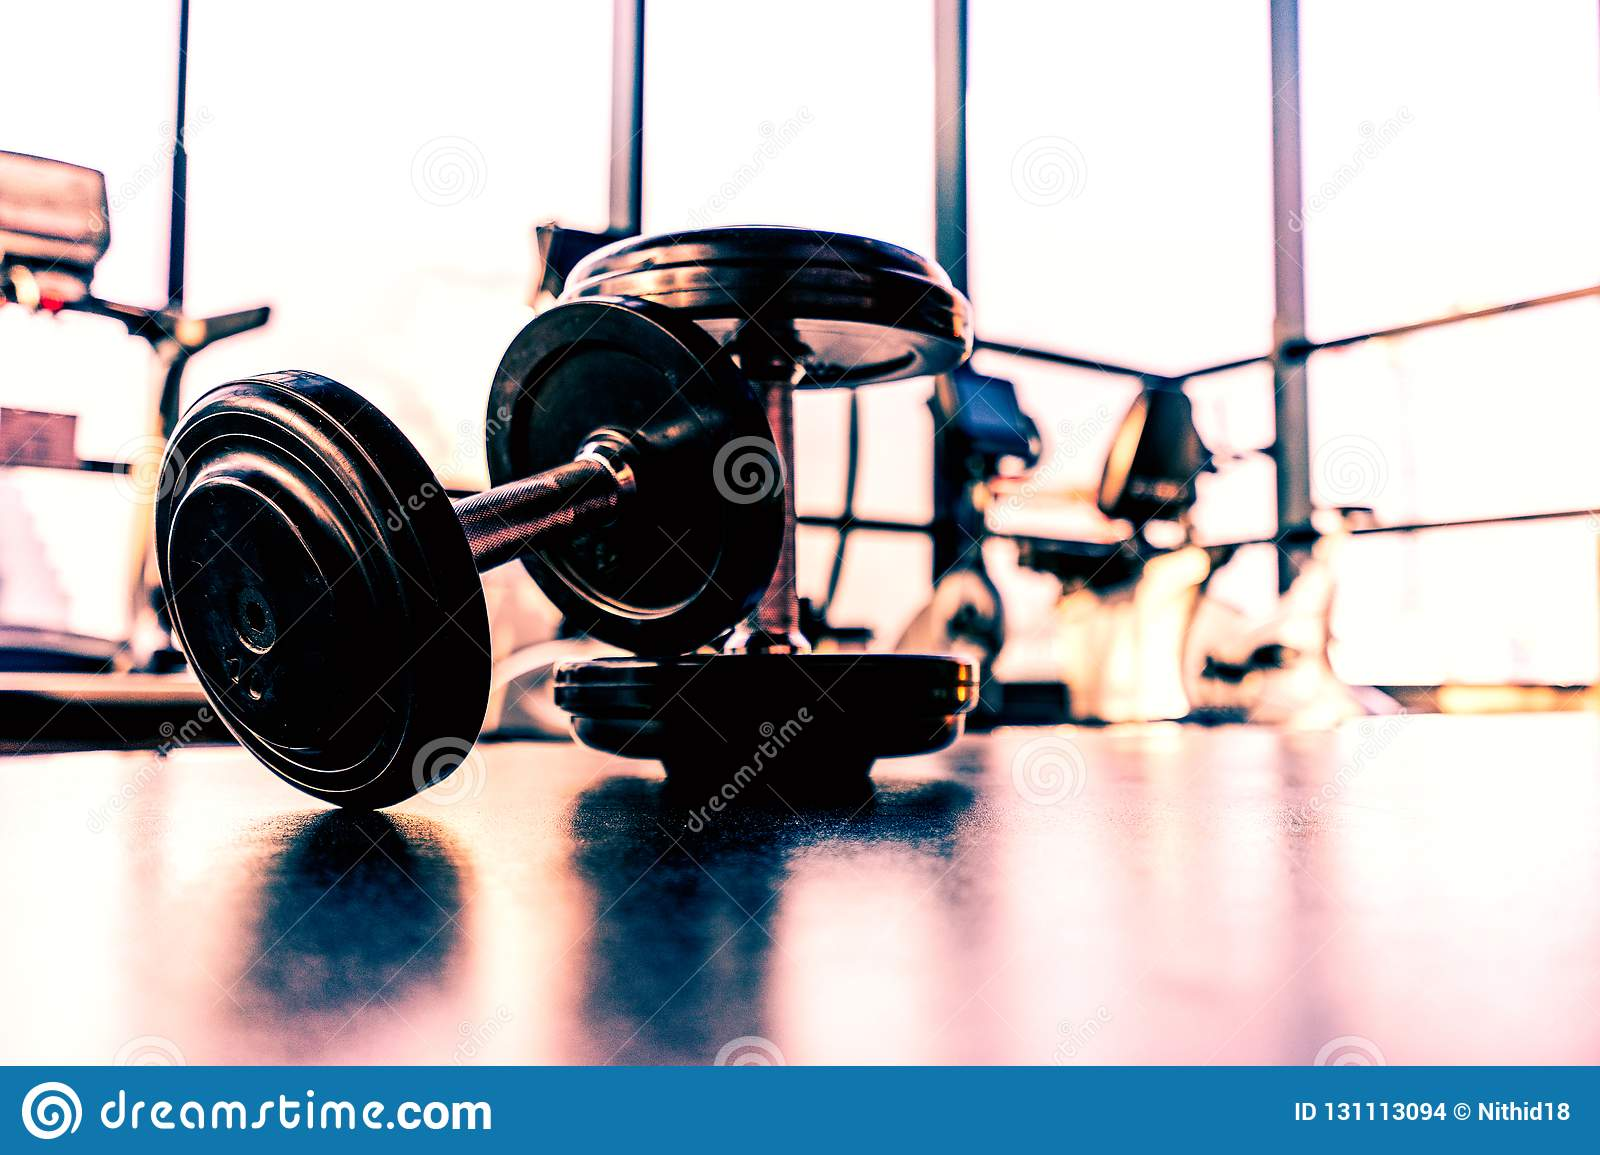 Dumbbell On The Floor In Fitness Room Stock Photo - Image of shadow